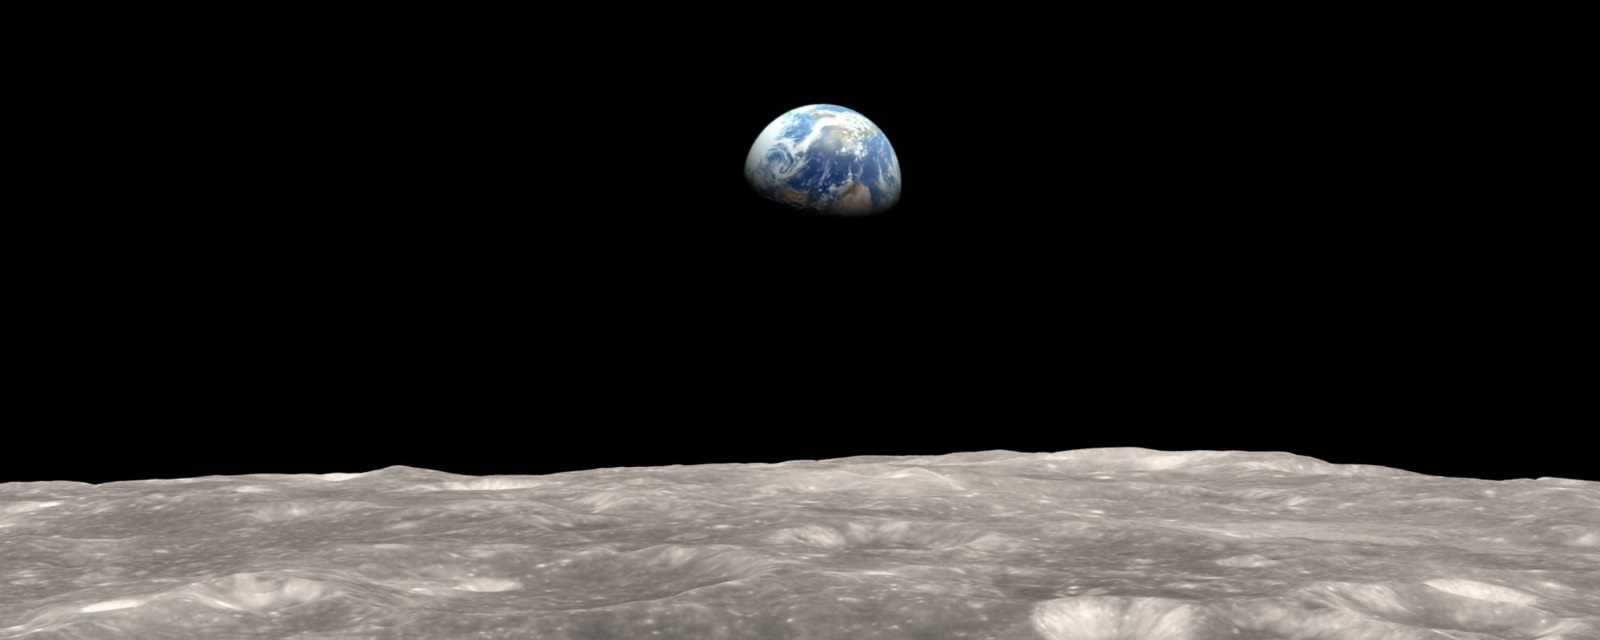 Lunar missions: Earthrise over Moon view from LRO